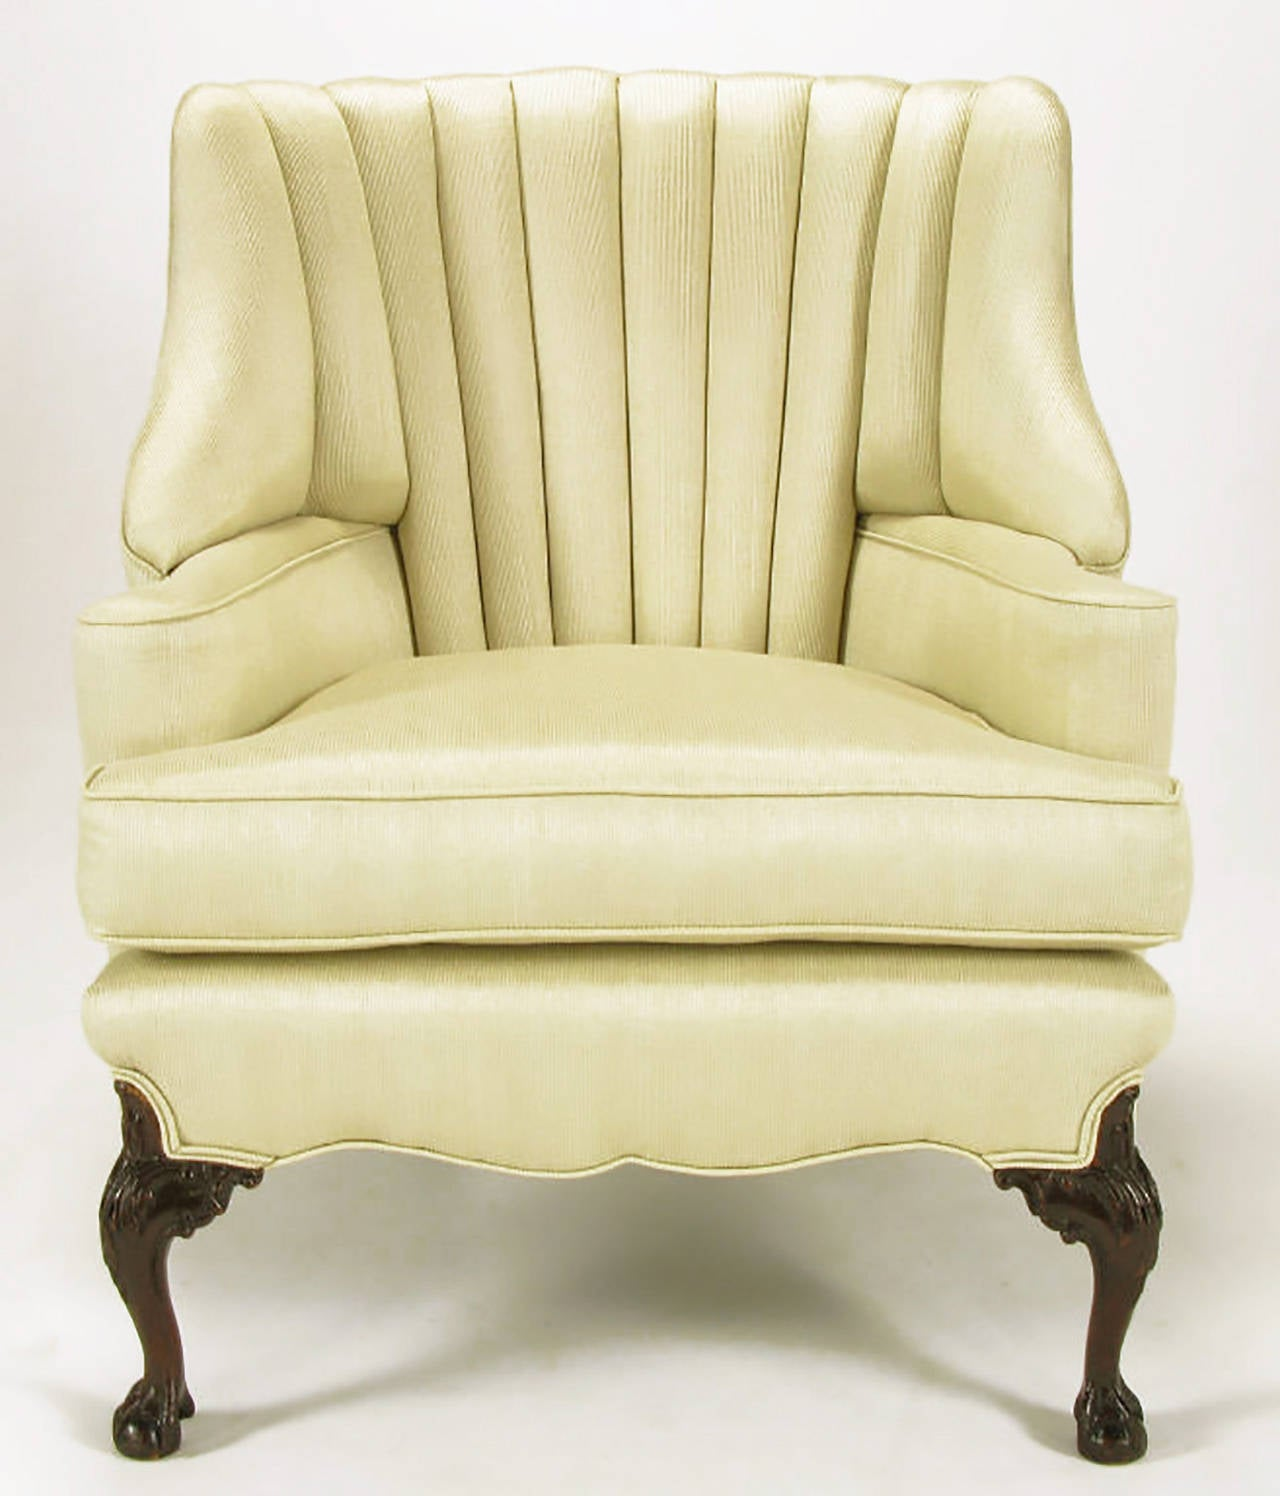 1930s Channel Back Claw Foot Georgian Wingback Chair For Sale 1